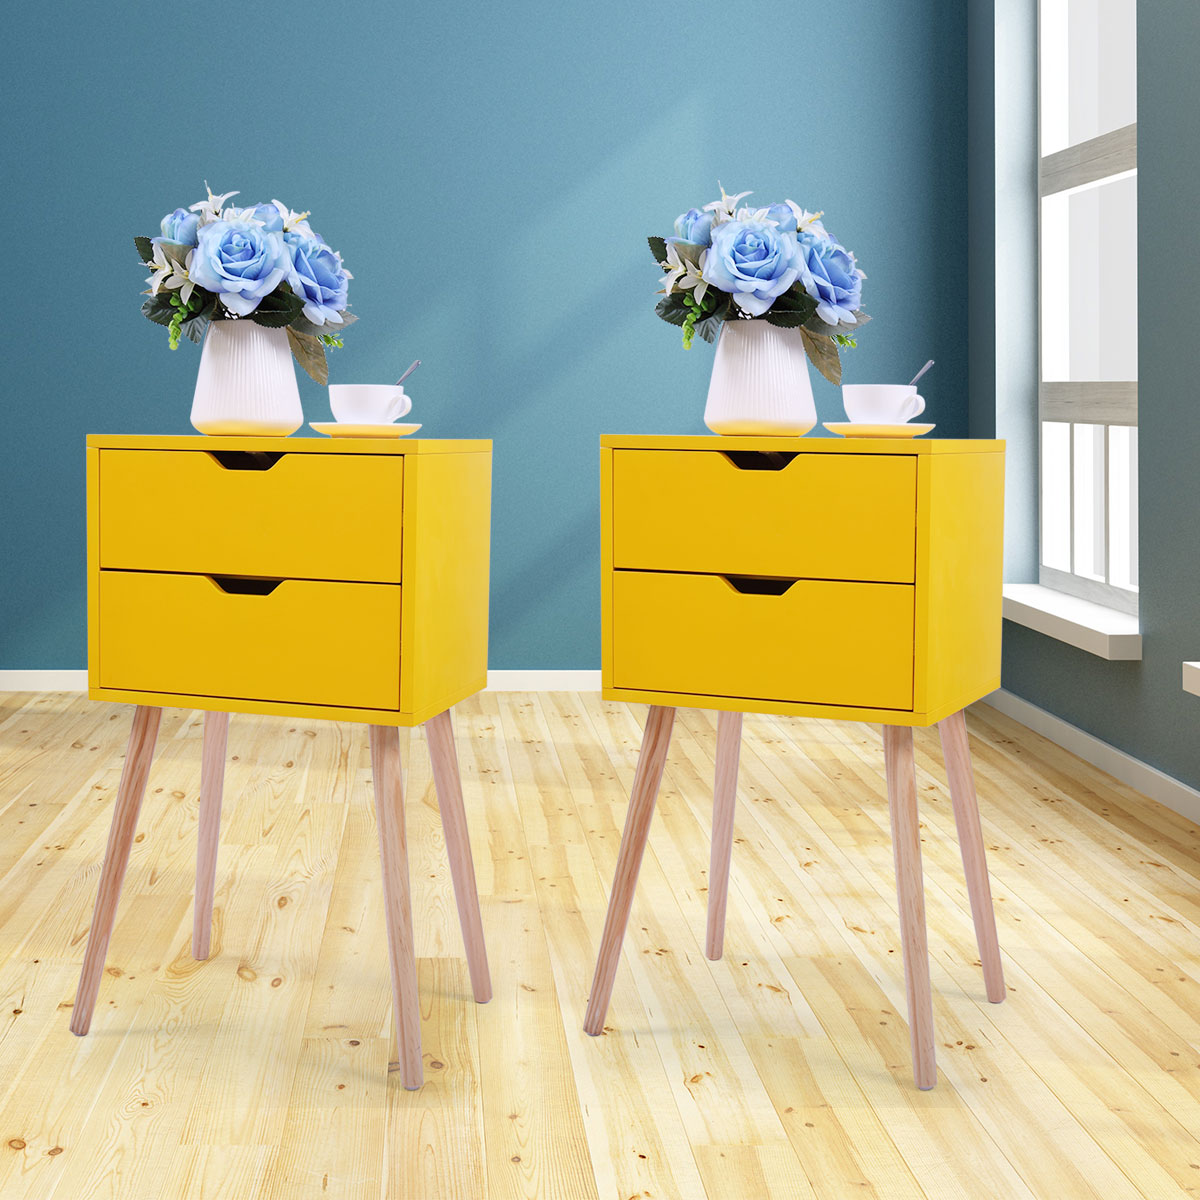 Jaxpety Set Of 2 Mid Century Modern Nightstand Bedside Table Sofa End Table Bedroom Decor 2 Drawers Storage With Solid Wood Legs Yellow Walmart Com Walmart Com